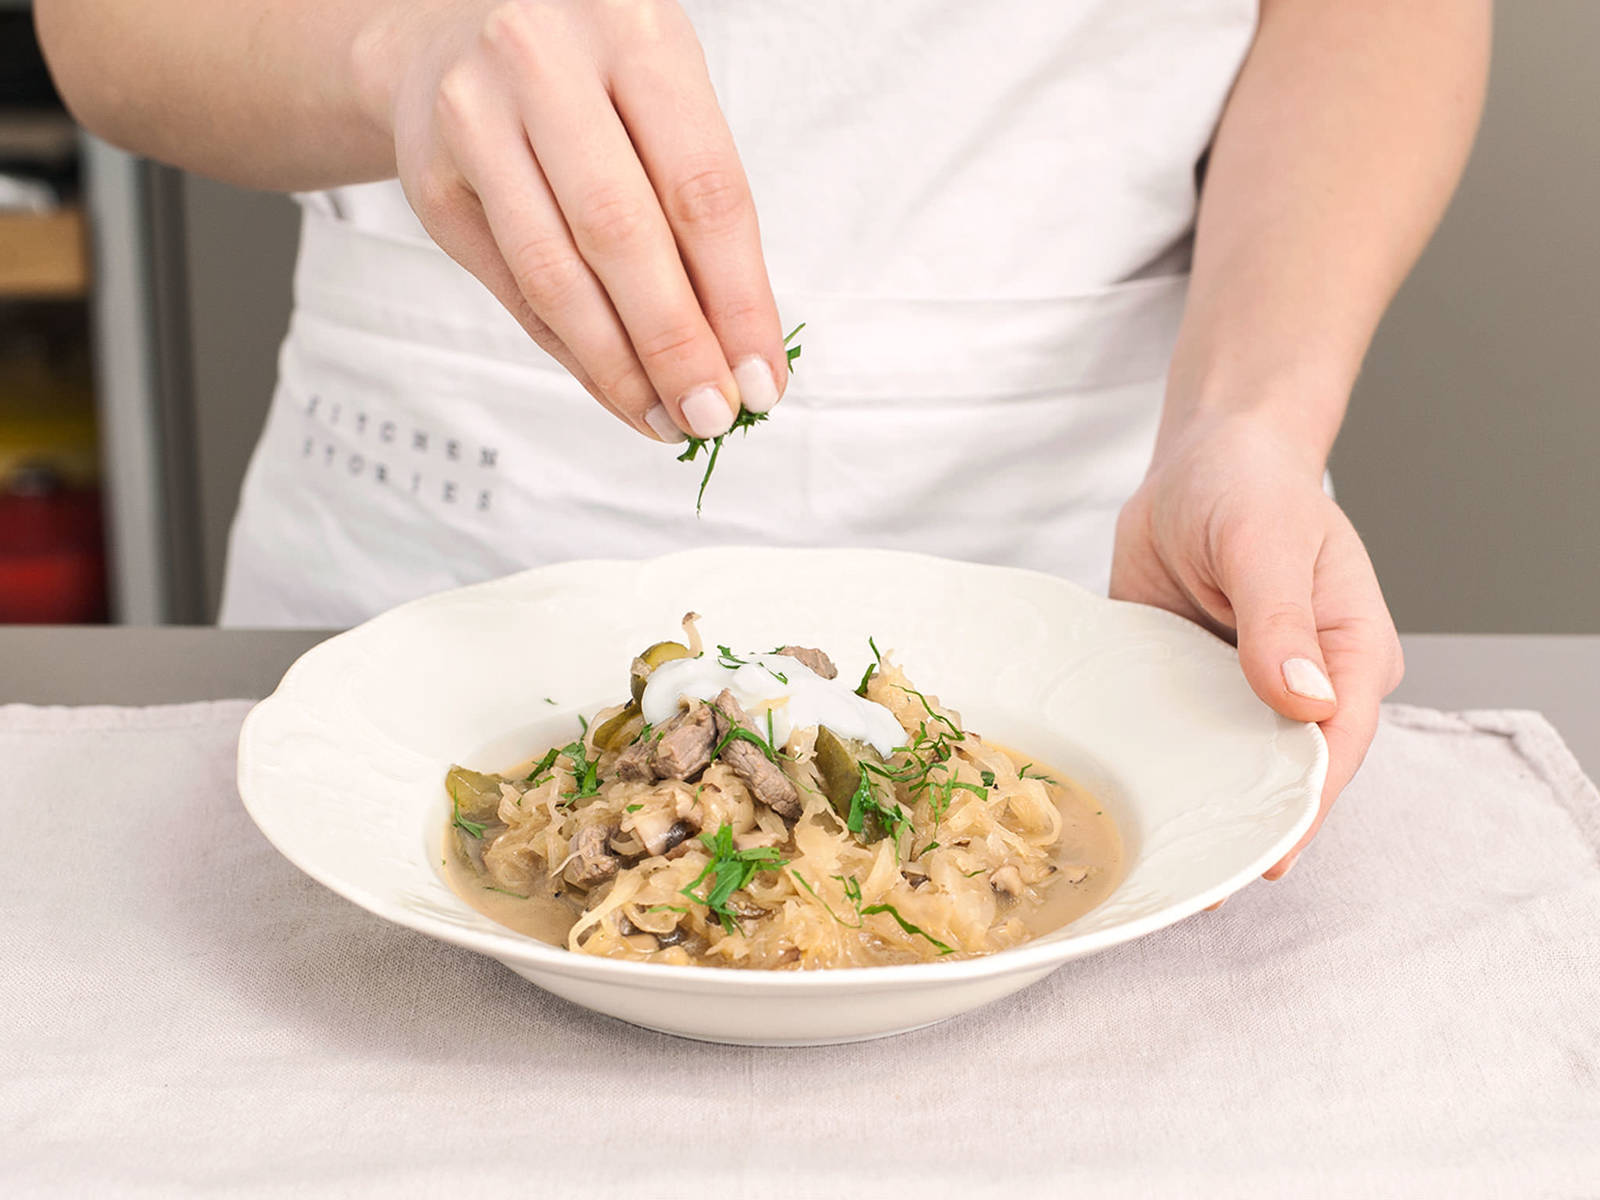 Transfer stew to two serving dishes and garnish with sour cream, parsley, and salt and pepper to taste.